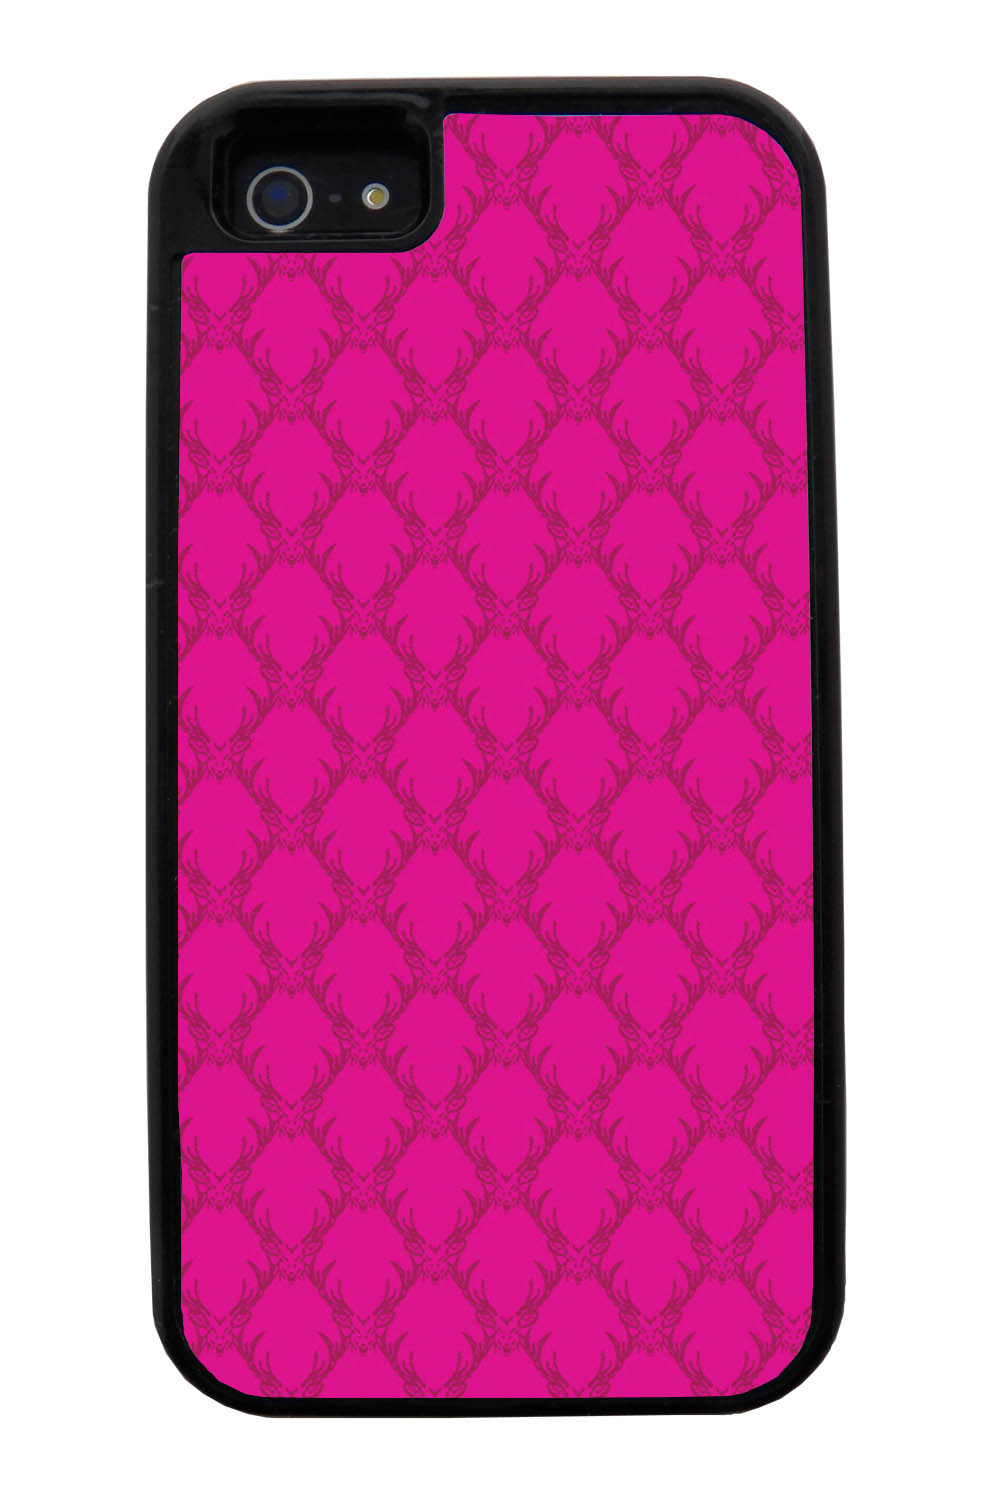 Apple iPhone 5 / 5S Pink Case - Hot Pink Deer Pattern - Fall And Winter - Black Tough Hybrid Case